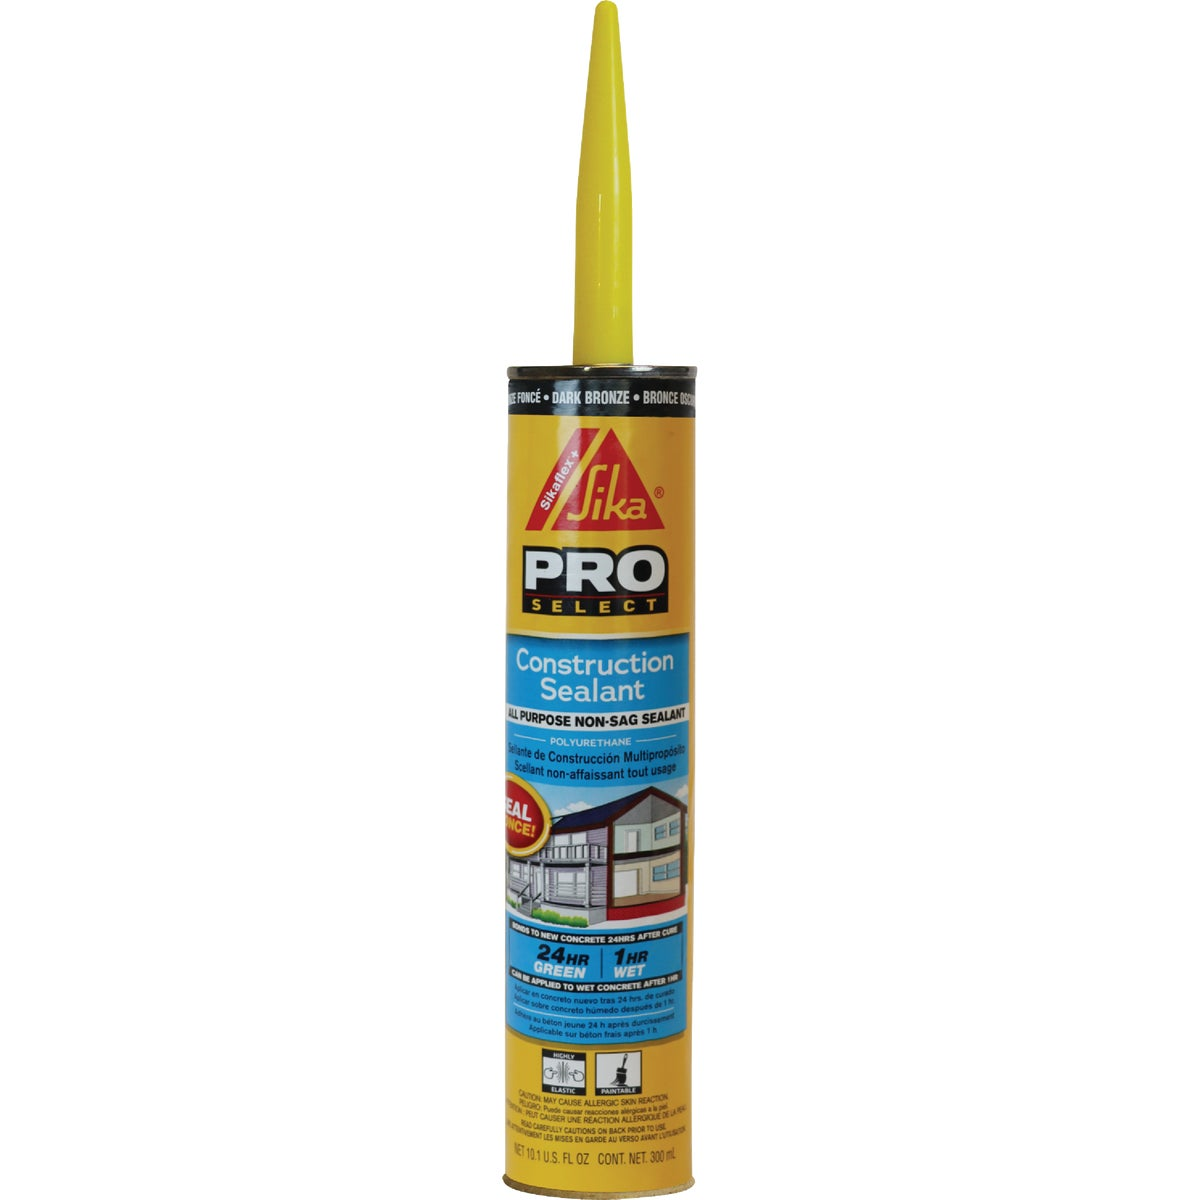 Sika Corp. 10 BRZ SFLX CONS SEALANT 90958